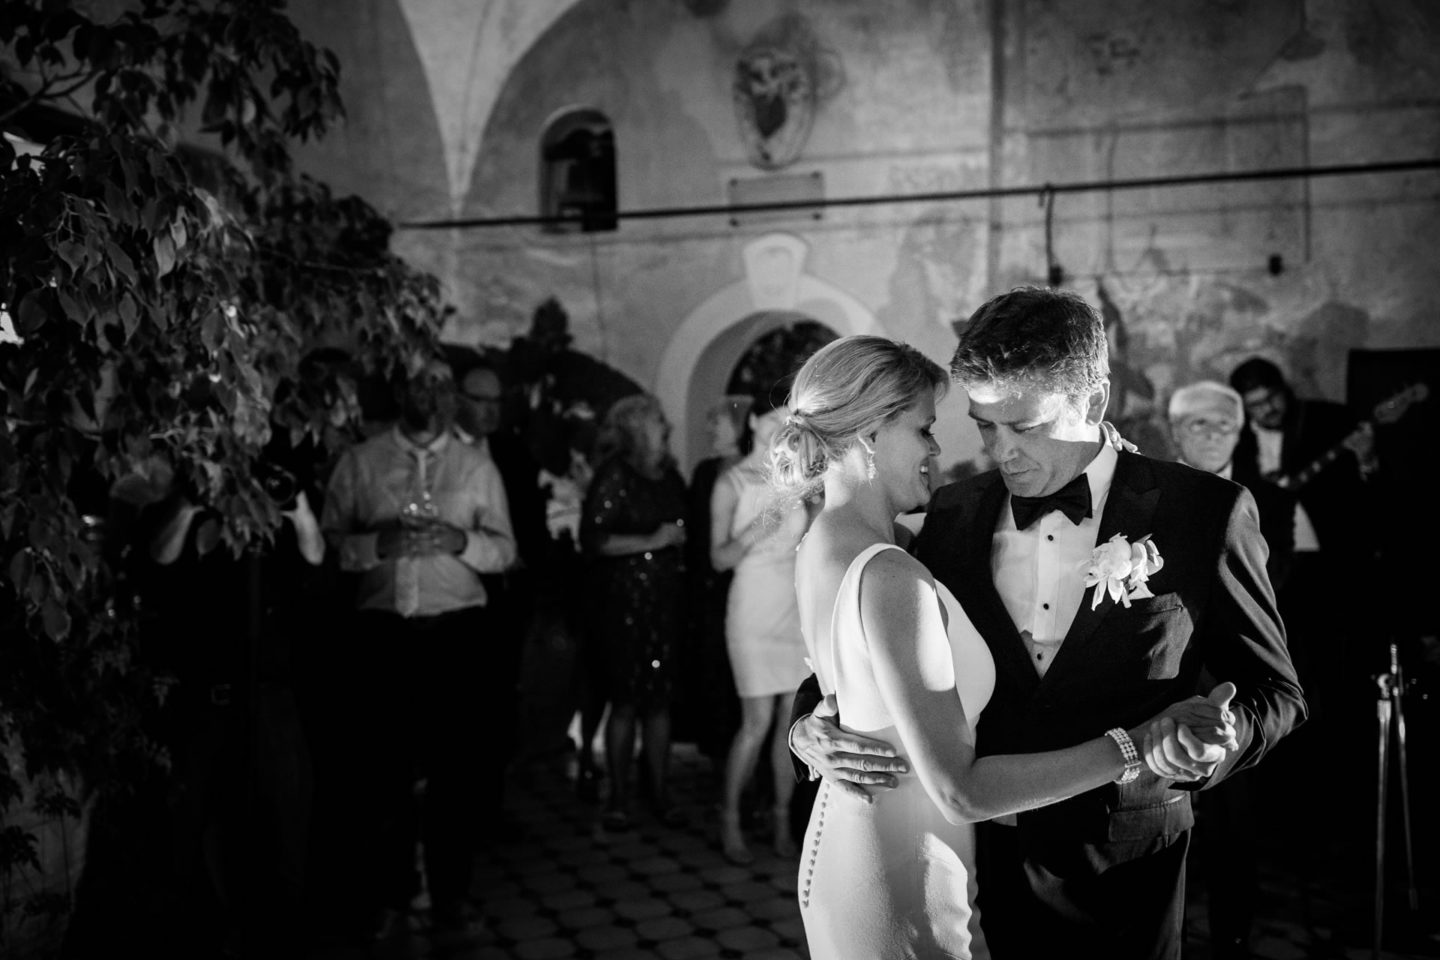 First Dance :: Wedding in Positano. Sea and love :: Wedding photographer based in Florence Tuscany Italy :: photo-58 :: First Dance